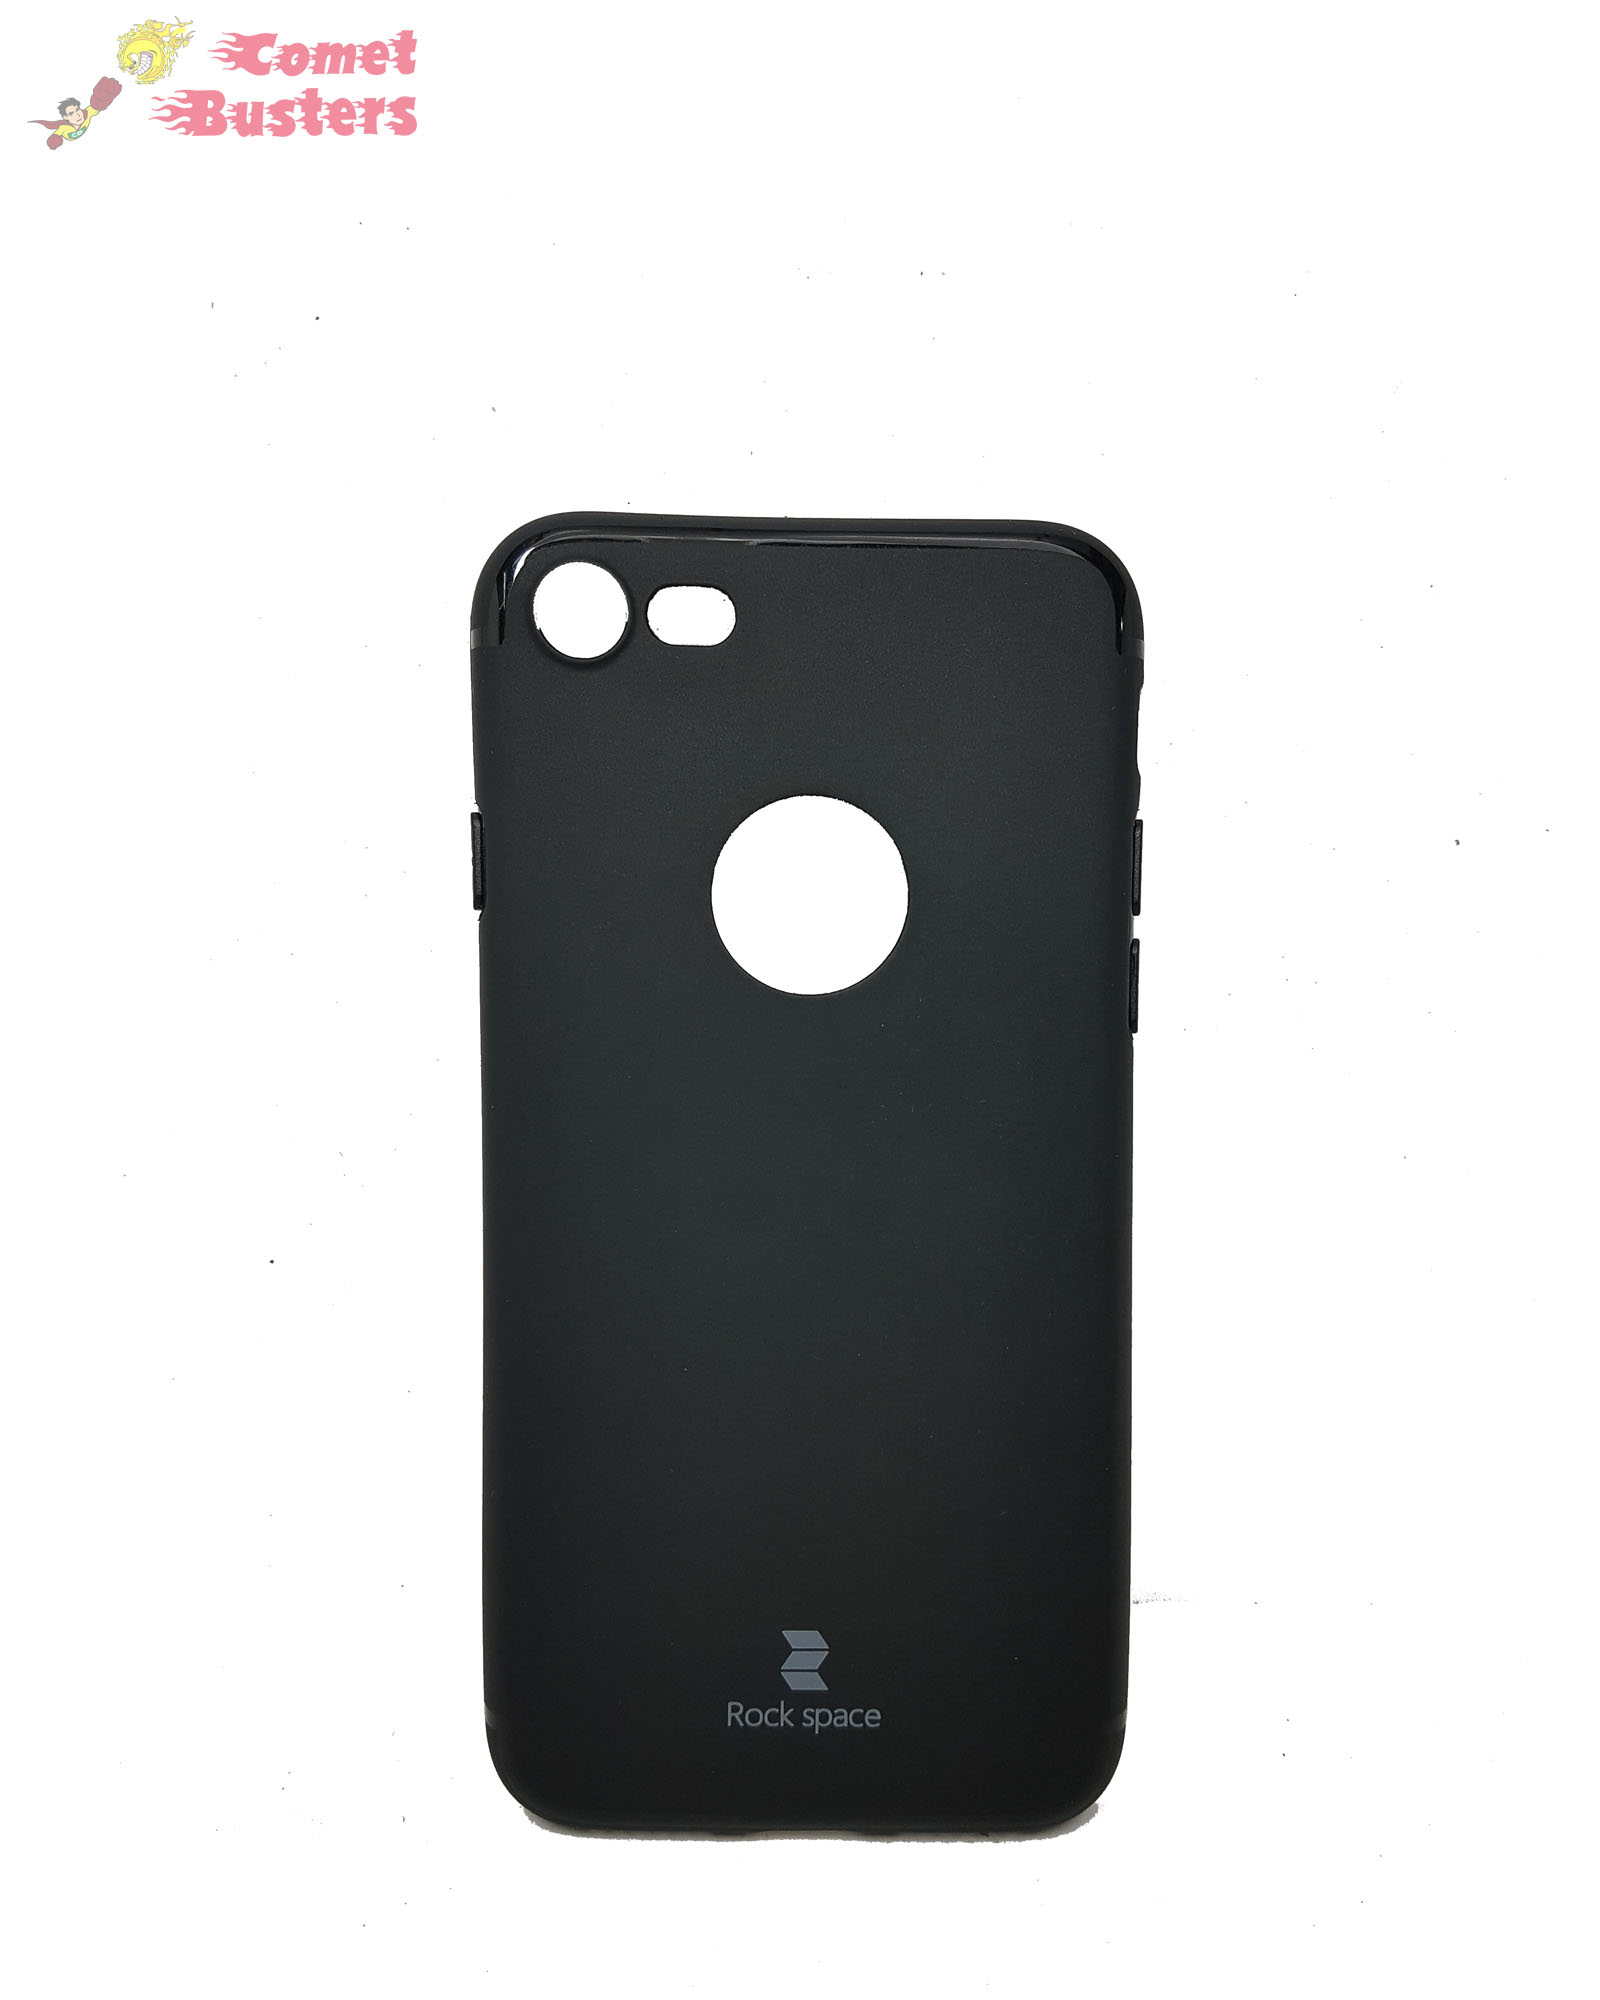 Apple iPhone 7 Back Cover Case | Black |